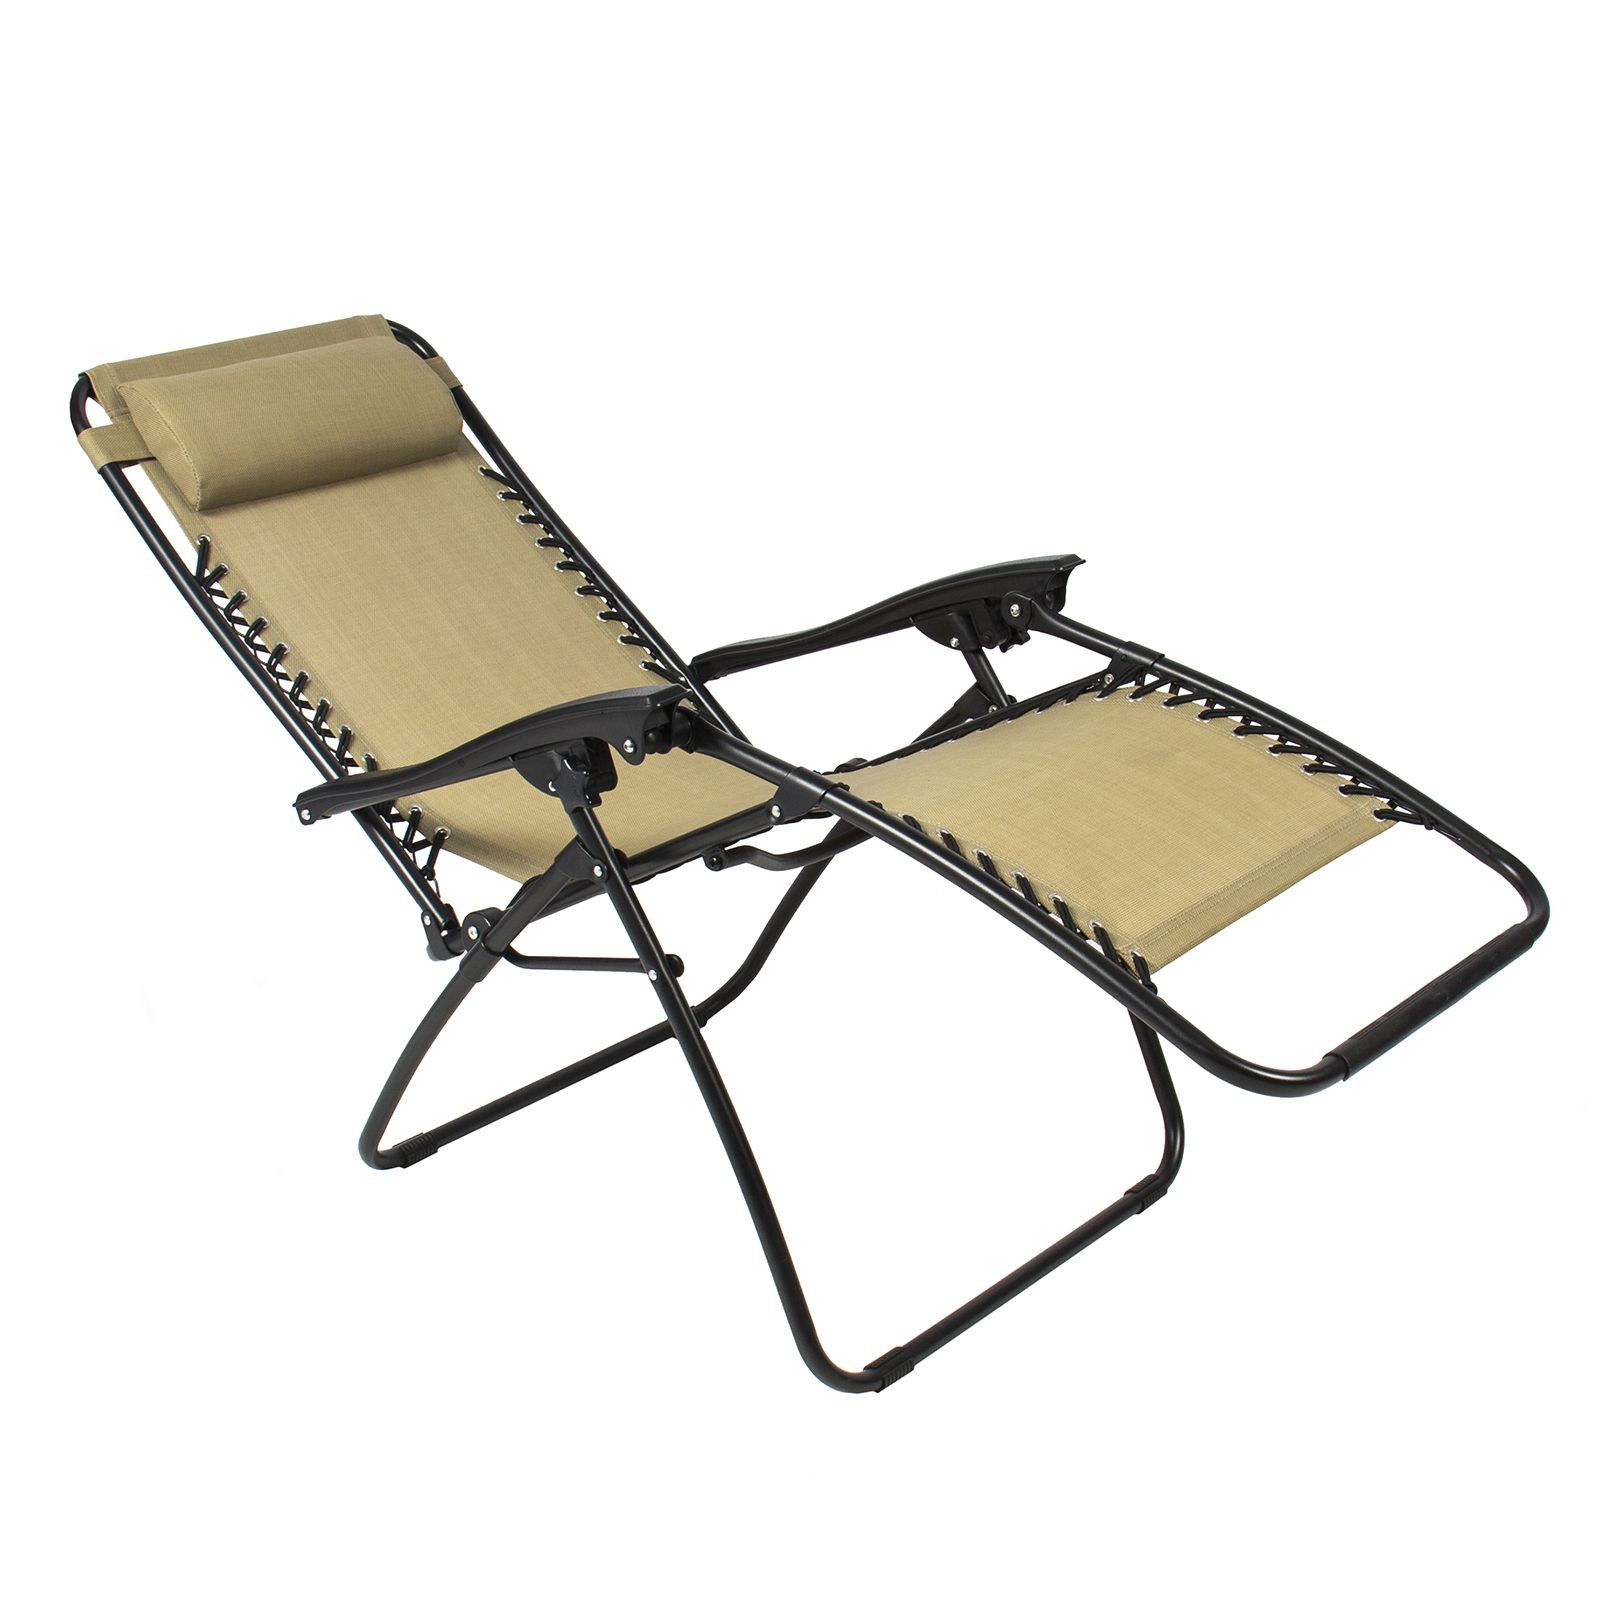 Bestchoiceproducts zero gravity chairs case of 2 tan